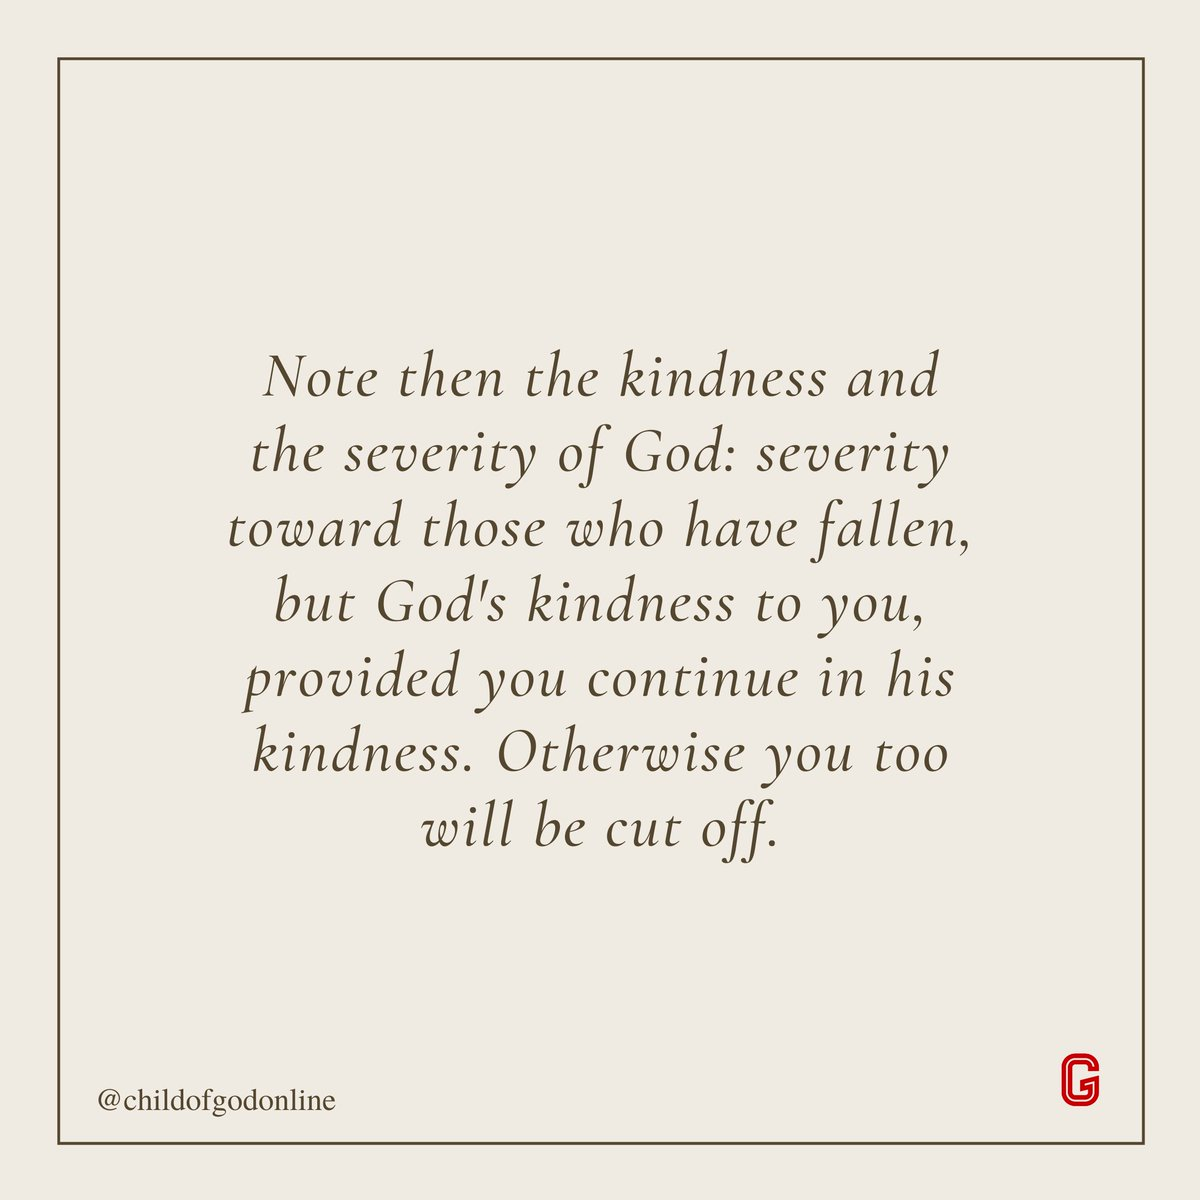 When it feels hard to be nice, even to our enemies, we must remember that God will show us kindness, but only if we also show that kindness to others.  #ChildOfGod #AlmightyGod #God #GodFirst #Christian #Jewish #Muslims #Religion #Faith #Blessings #GodIsLove #GodsPlan #Prayers https://t.co/wut6S6o8bV